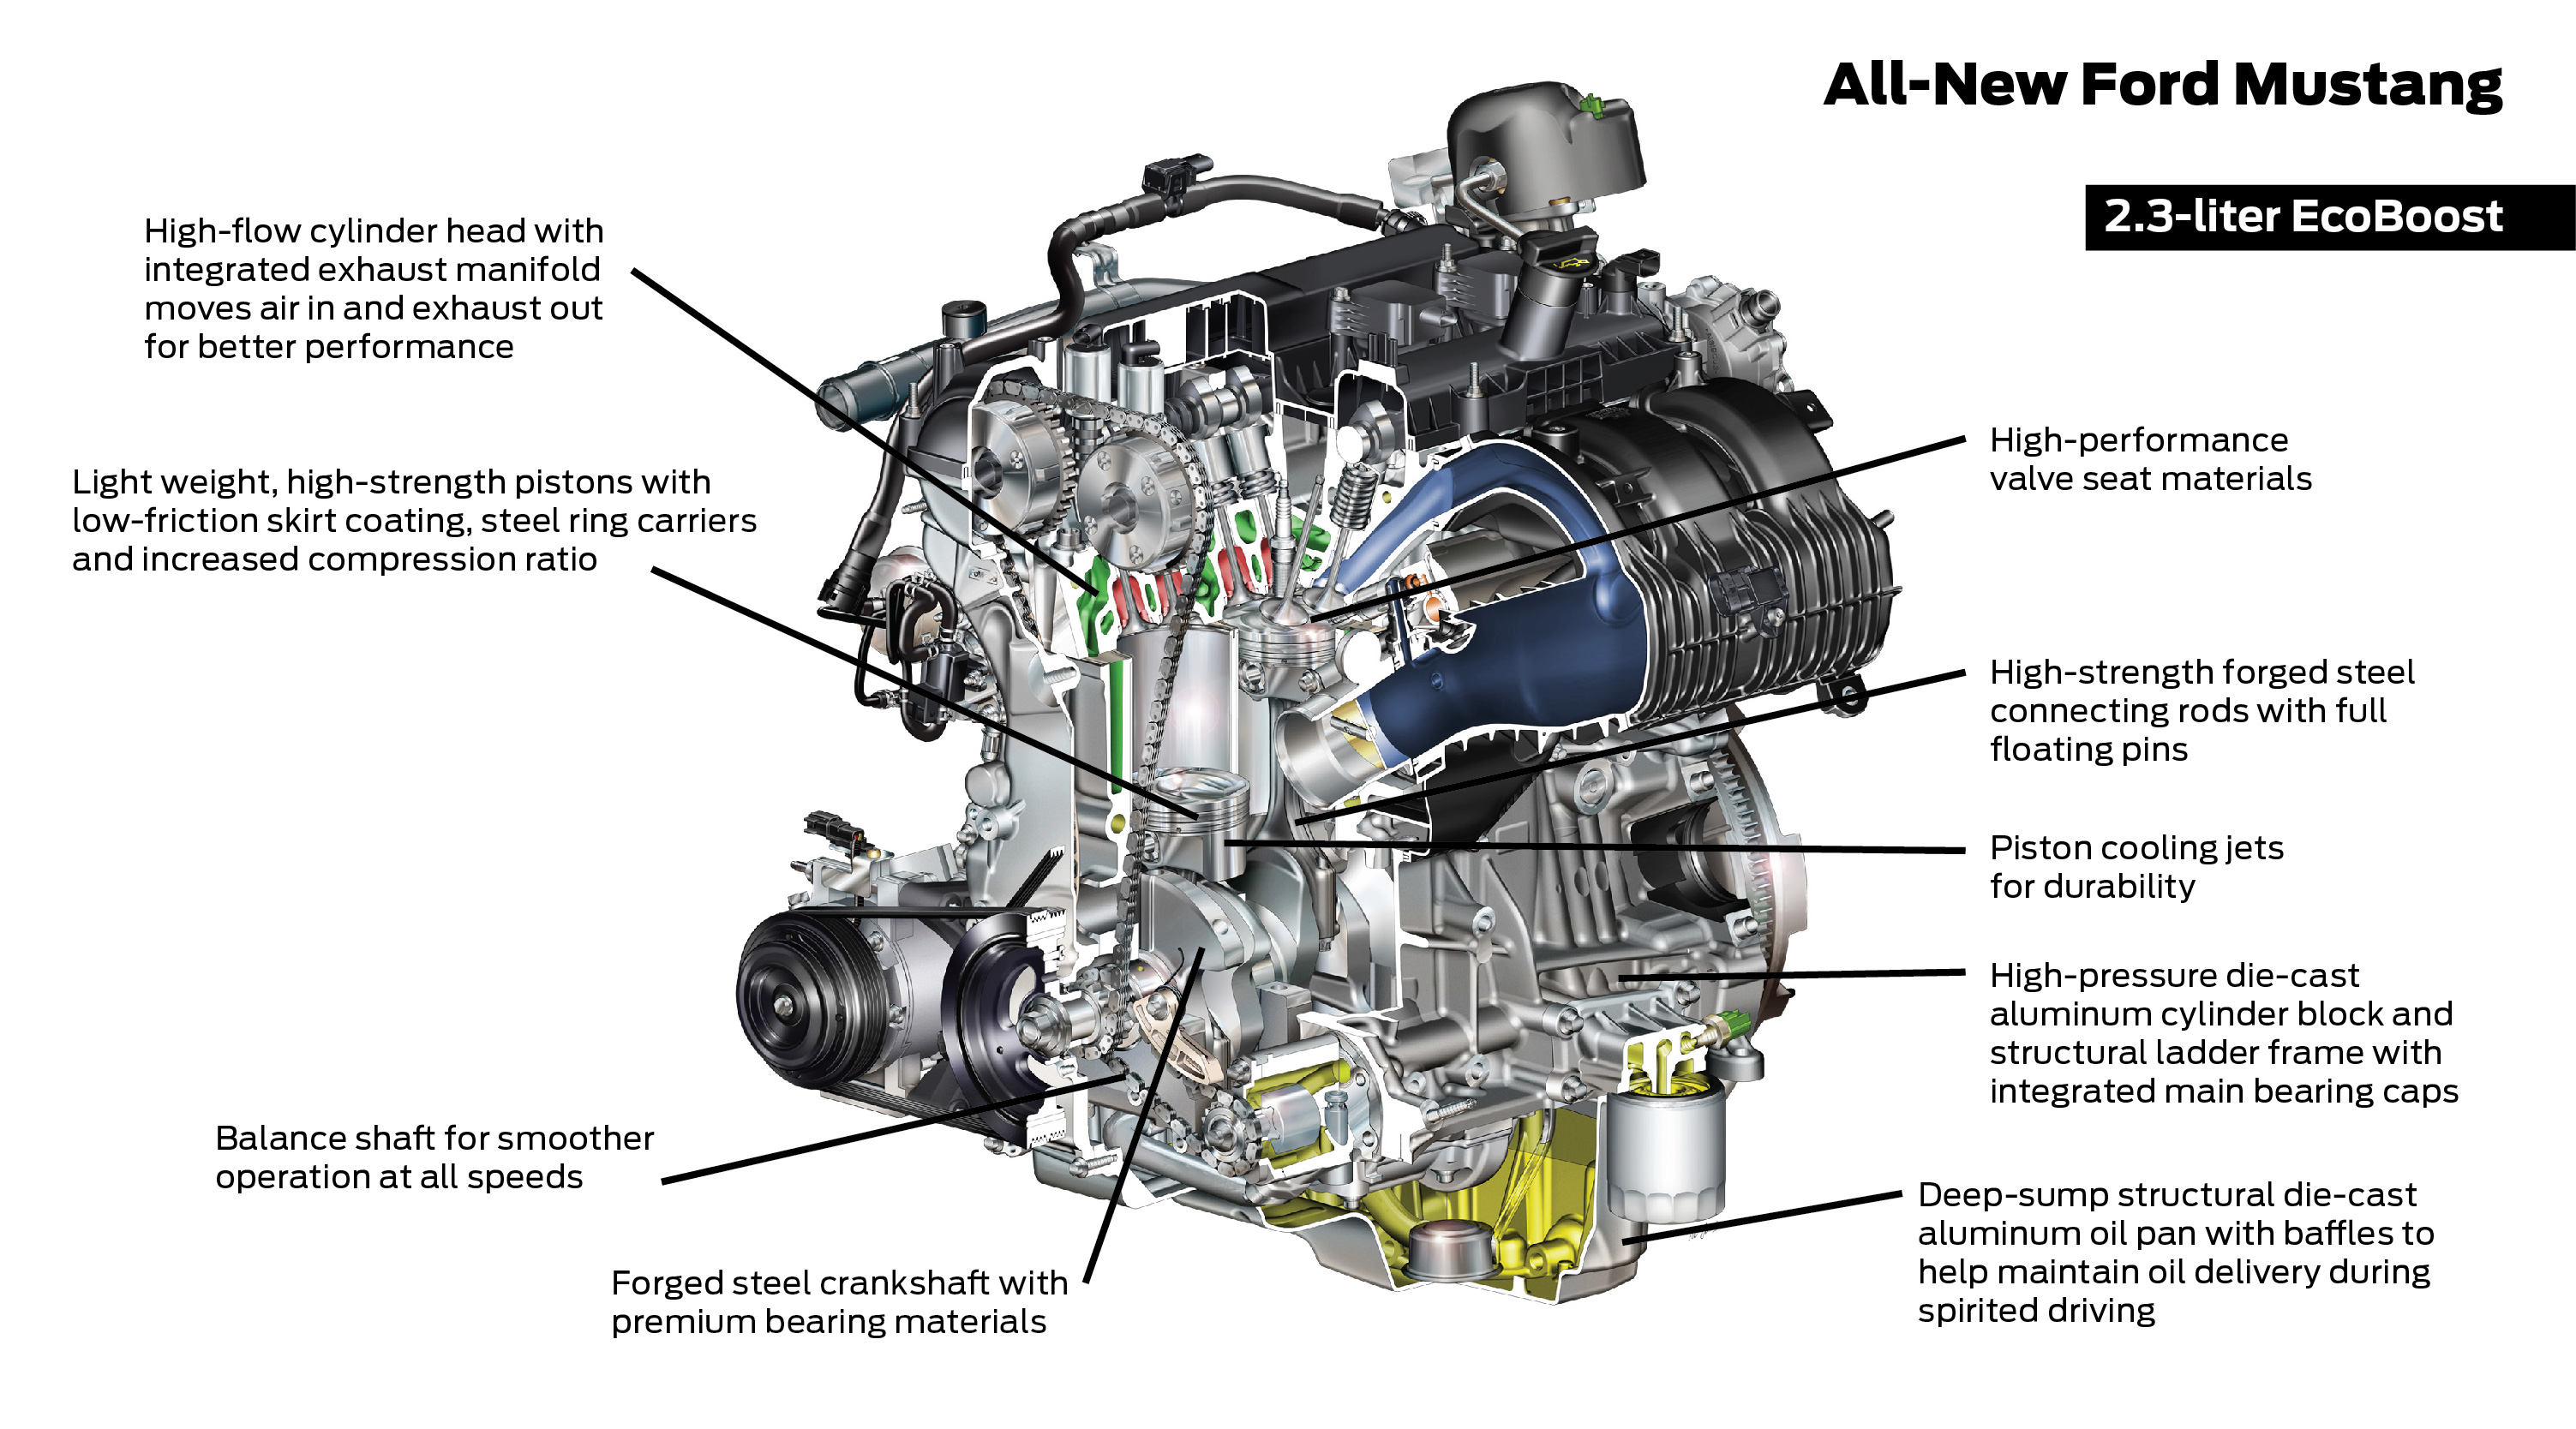 a simple guide to the 2015 ford mustang 2 3 liter ecoboost engine i m